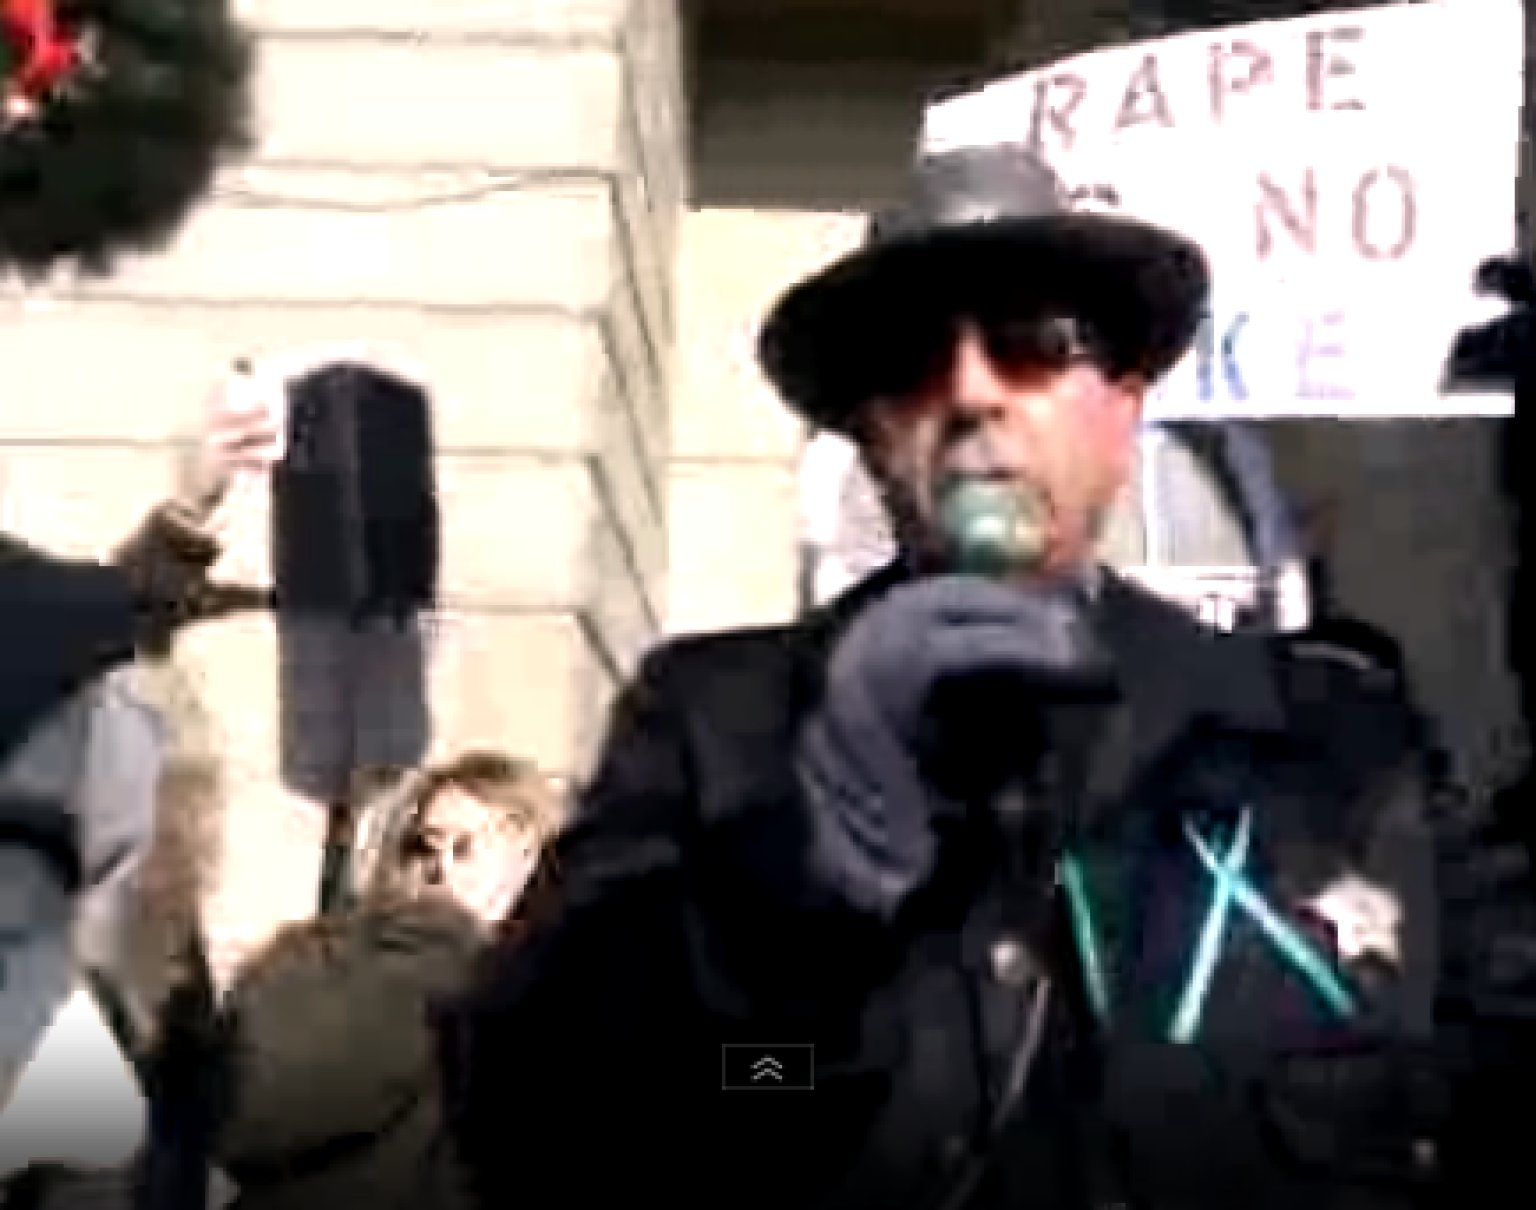 The negative effects of knowledge in the steubenville rape case